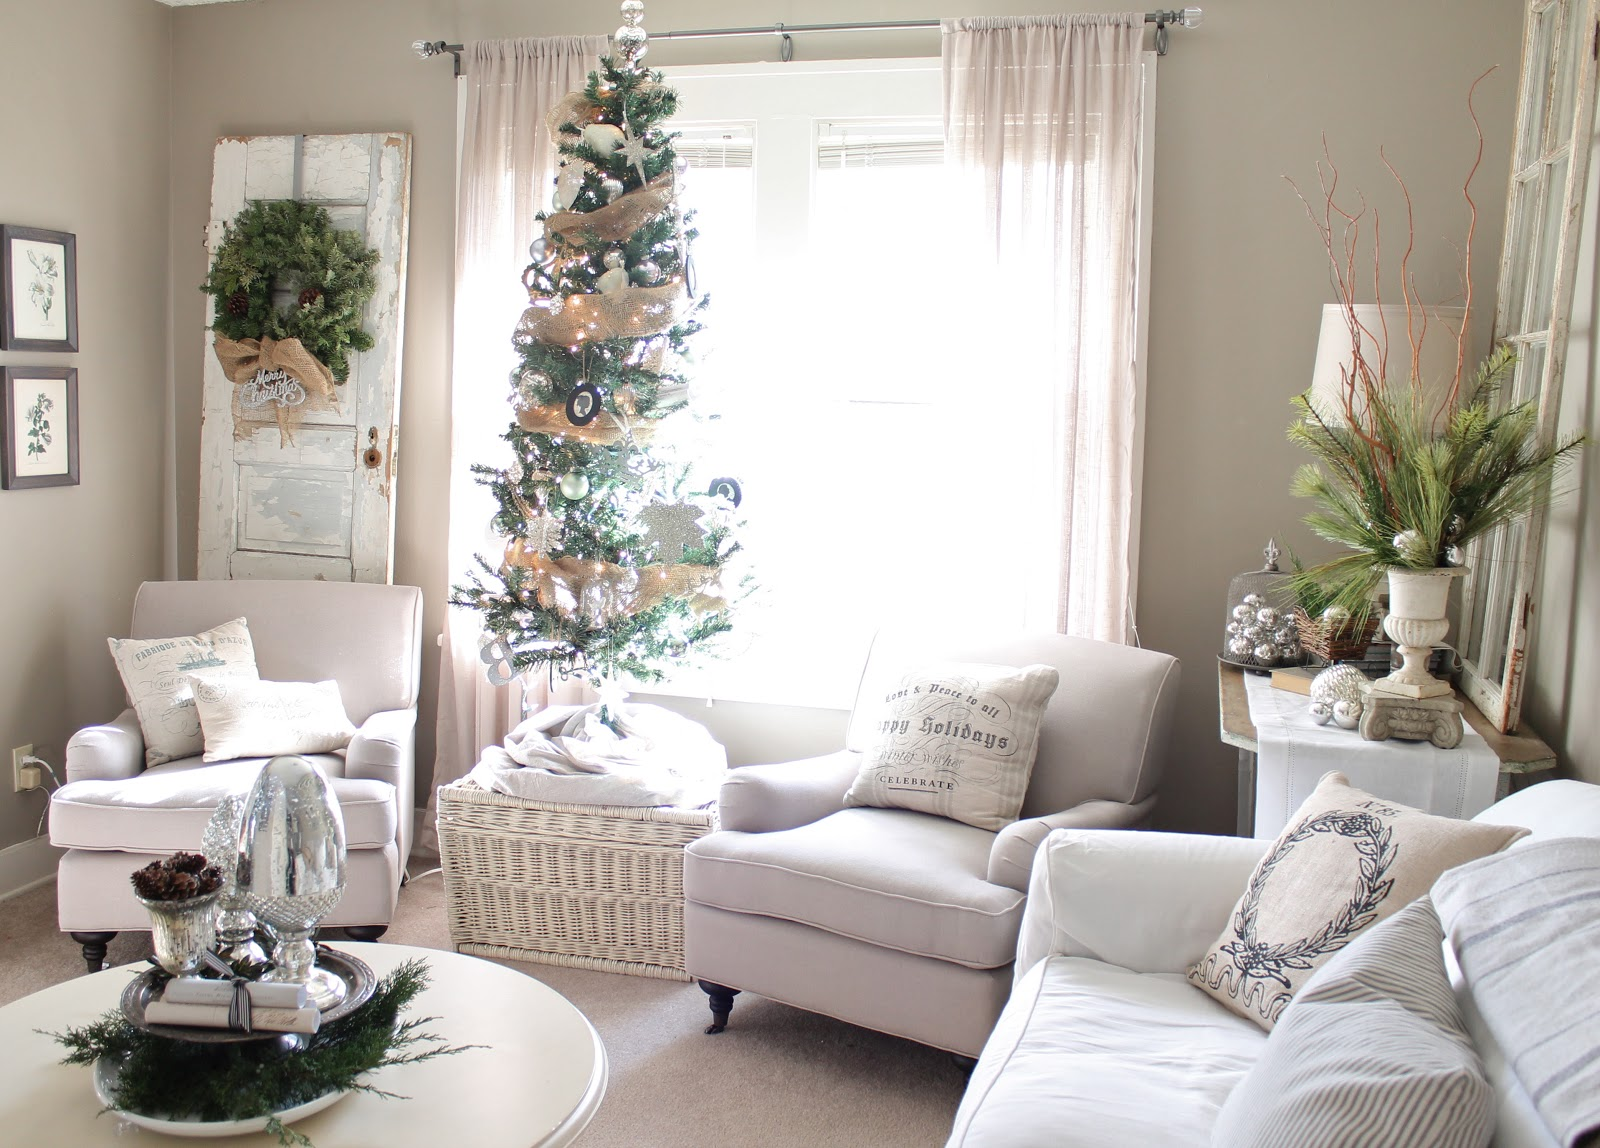 ideas for decorating my living room christmas the most popular paint color rooms top white decorations celebration all cool idea source